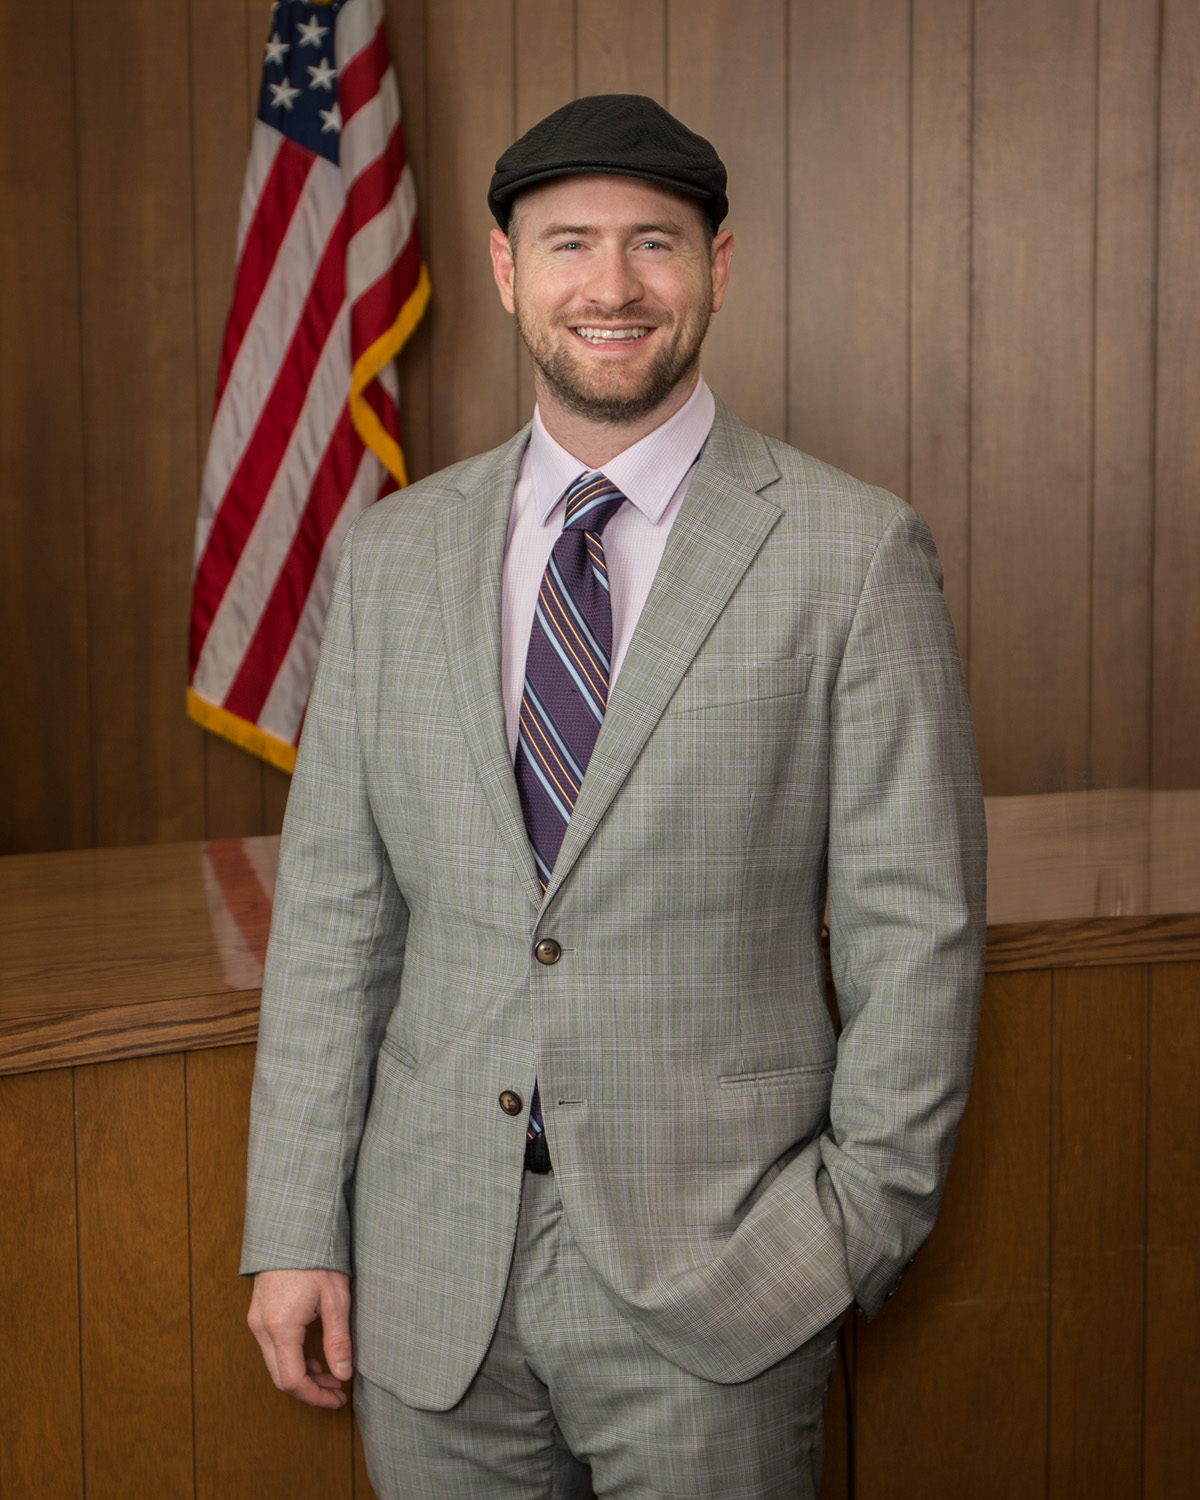 Ryan-Toussaint-Solvang-Mayor.jpg